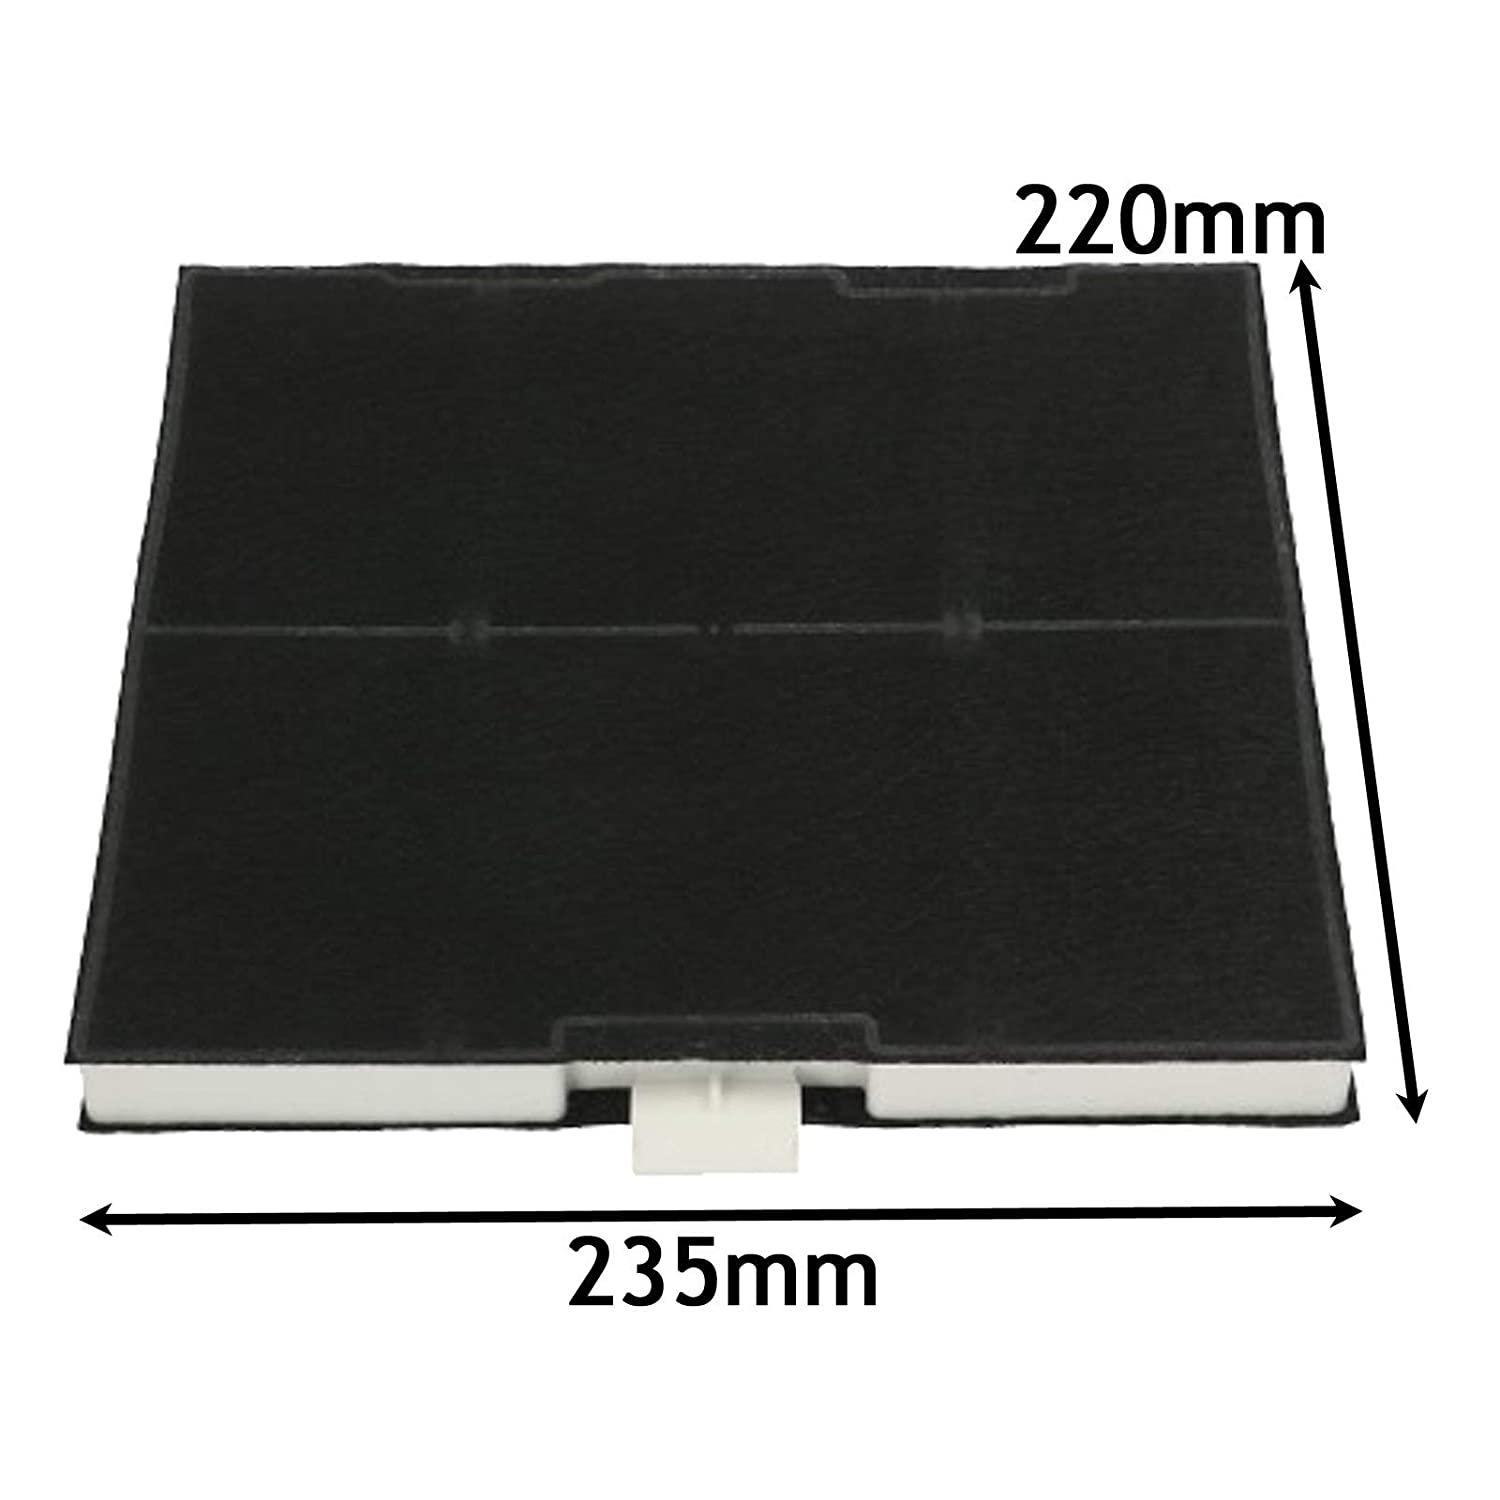 SPARES2GO Anti-Odour Carbon Filter for Neff Cooker Hood (220 x 235 x 21mm)